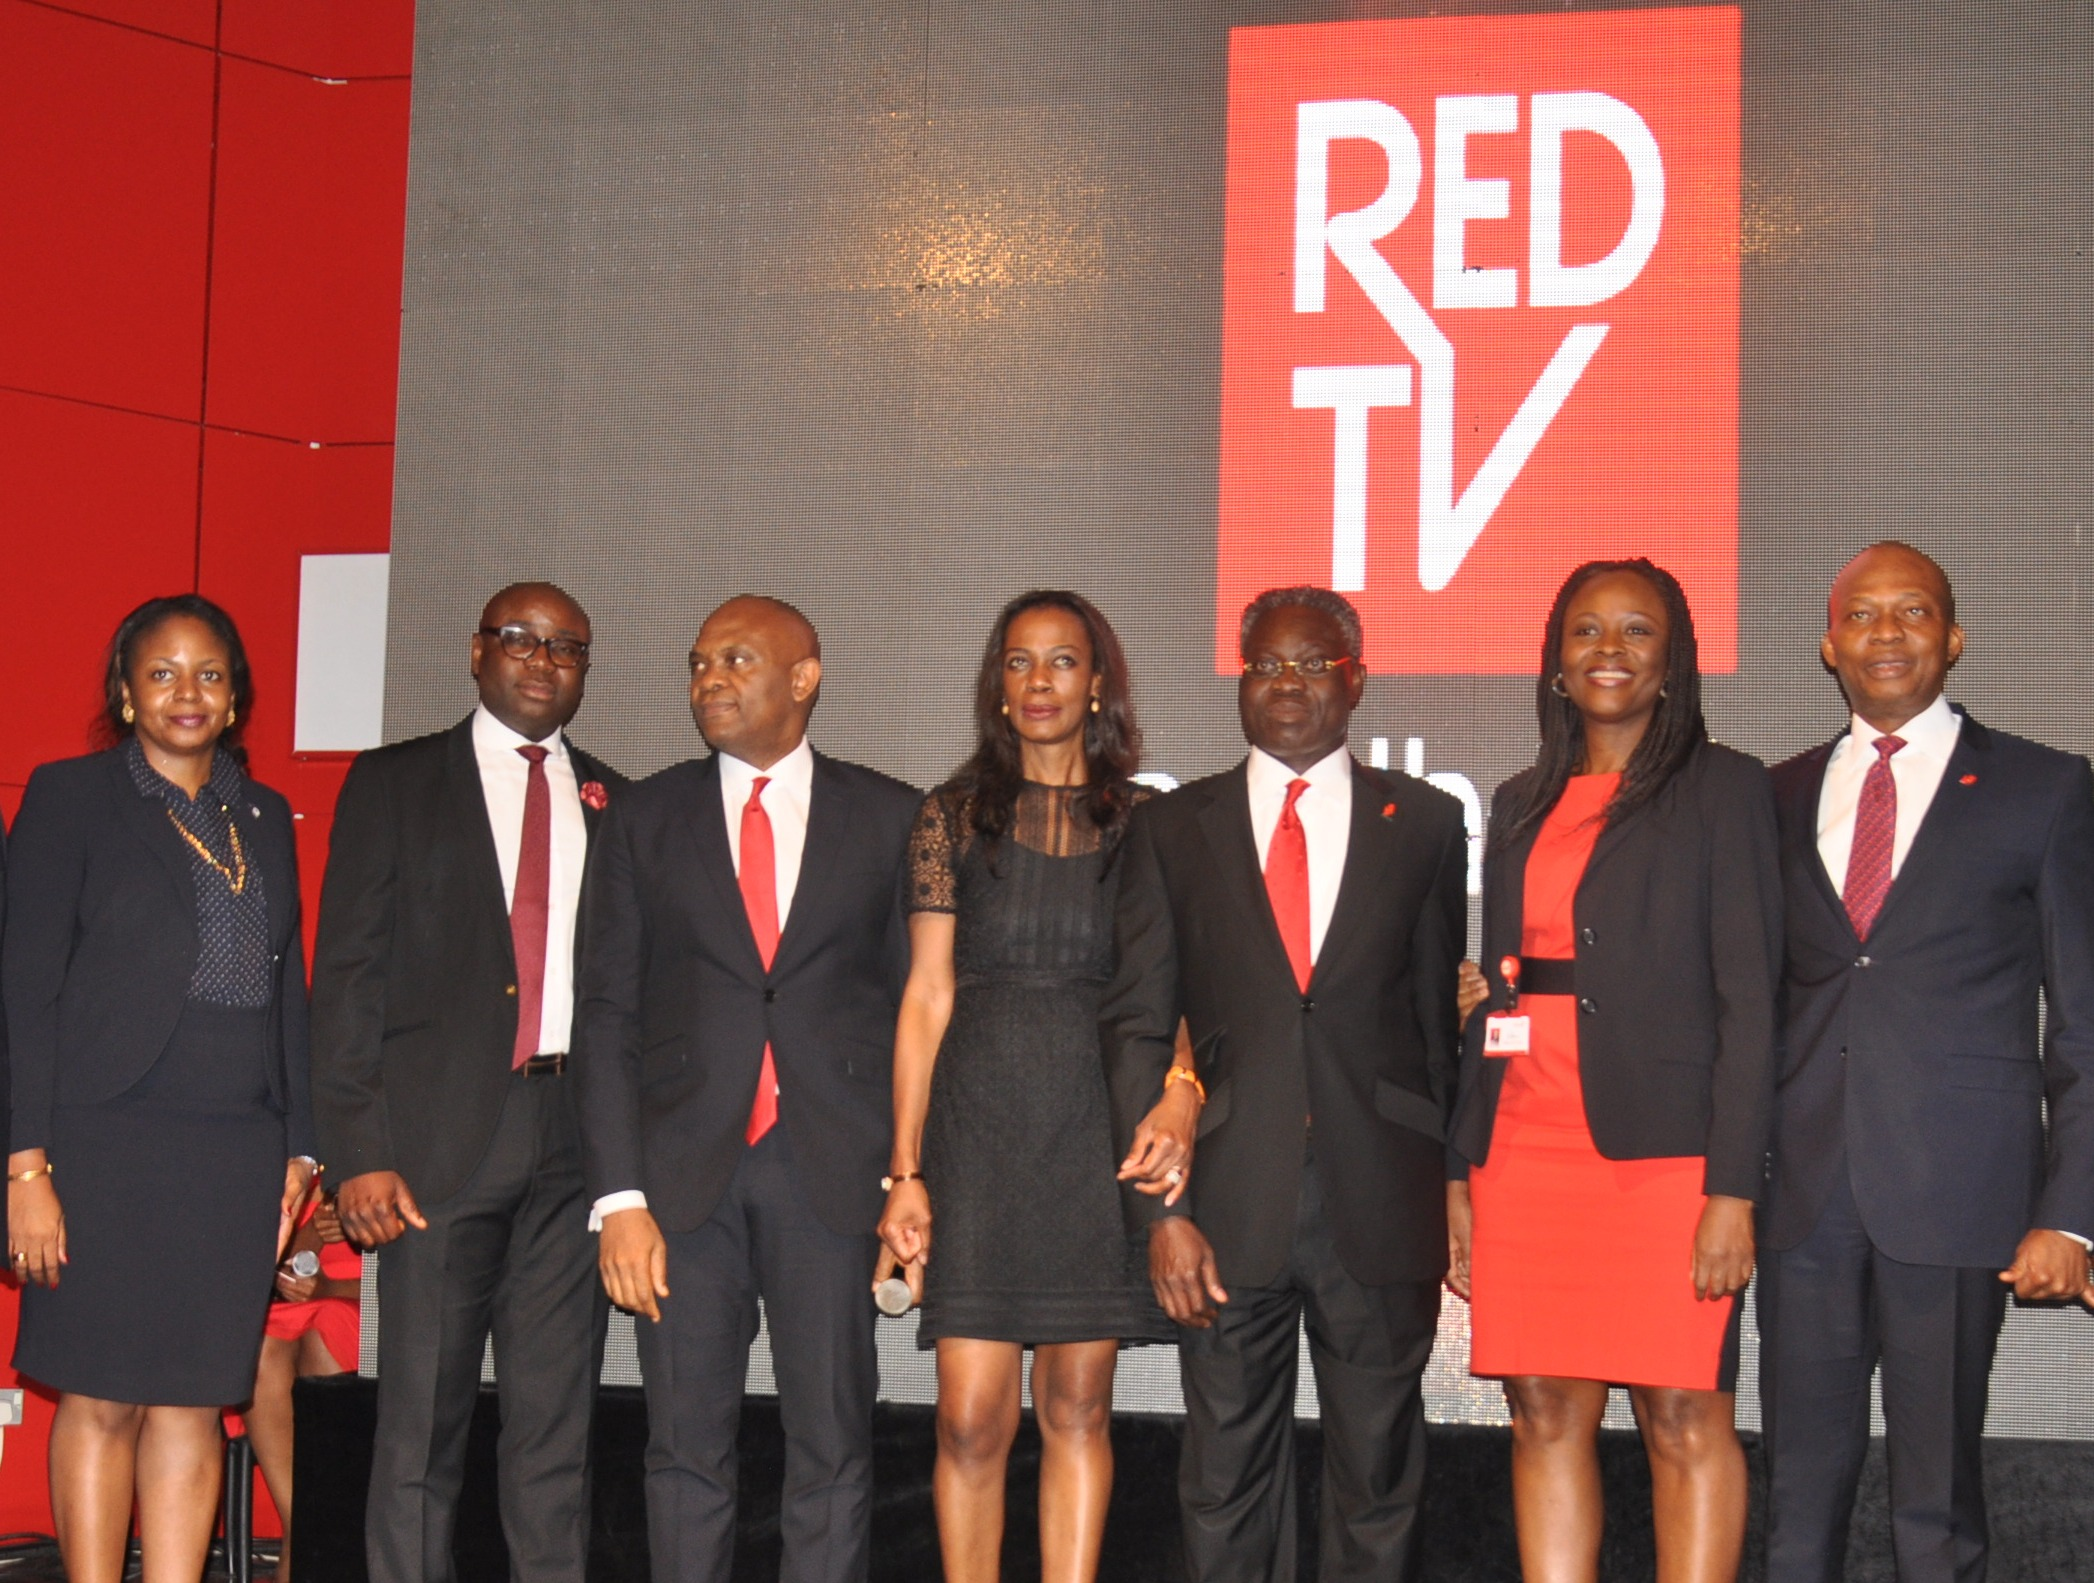 REDTV Launch Picture 3